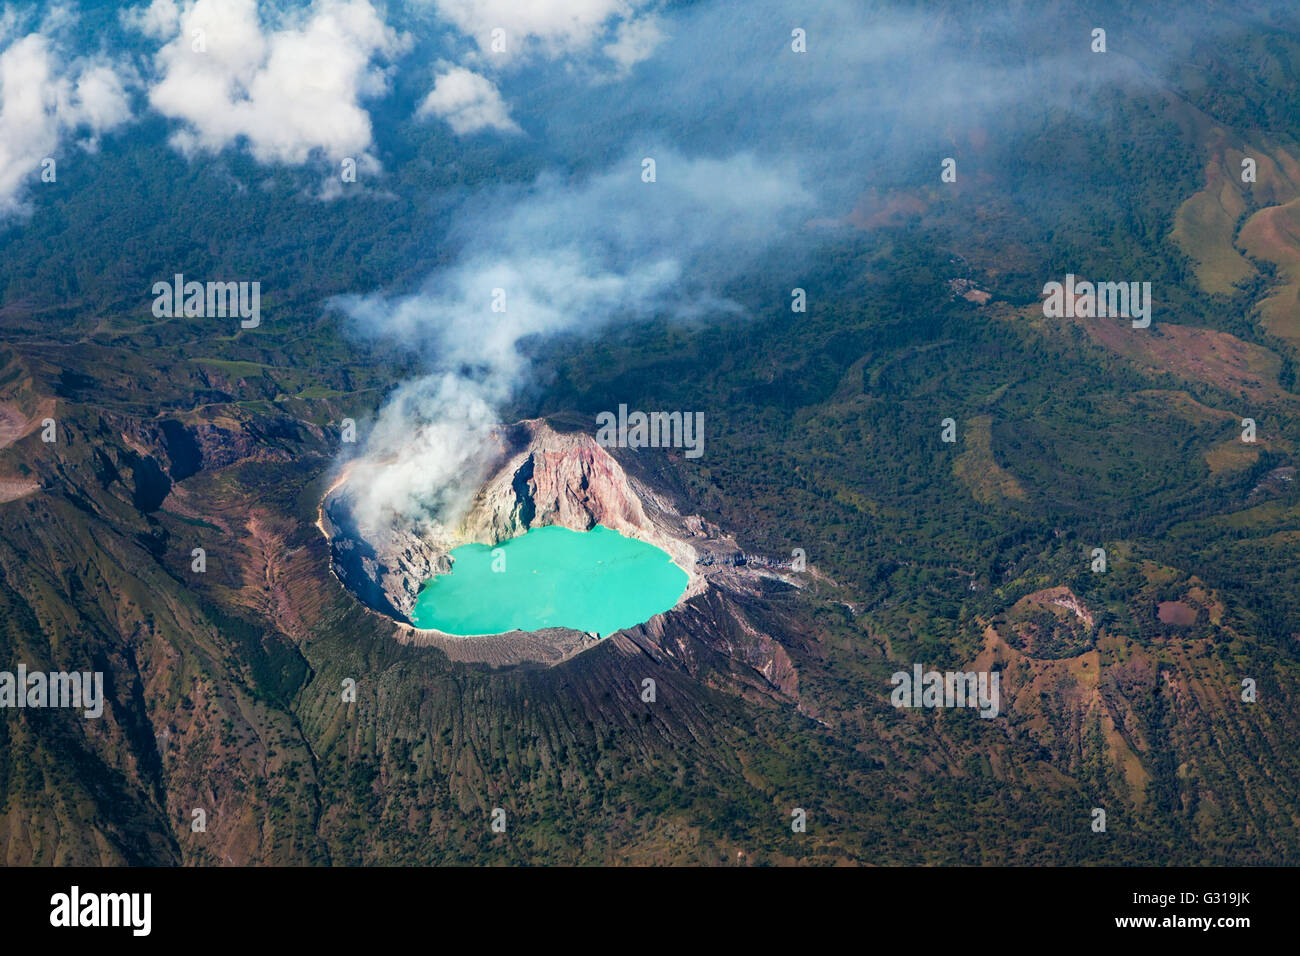 Aerial photo of active volcano Ijen in East Java - largest highly acidic crater lake in world with turquoise sulphuric - Stock Image